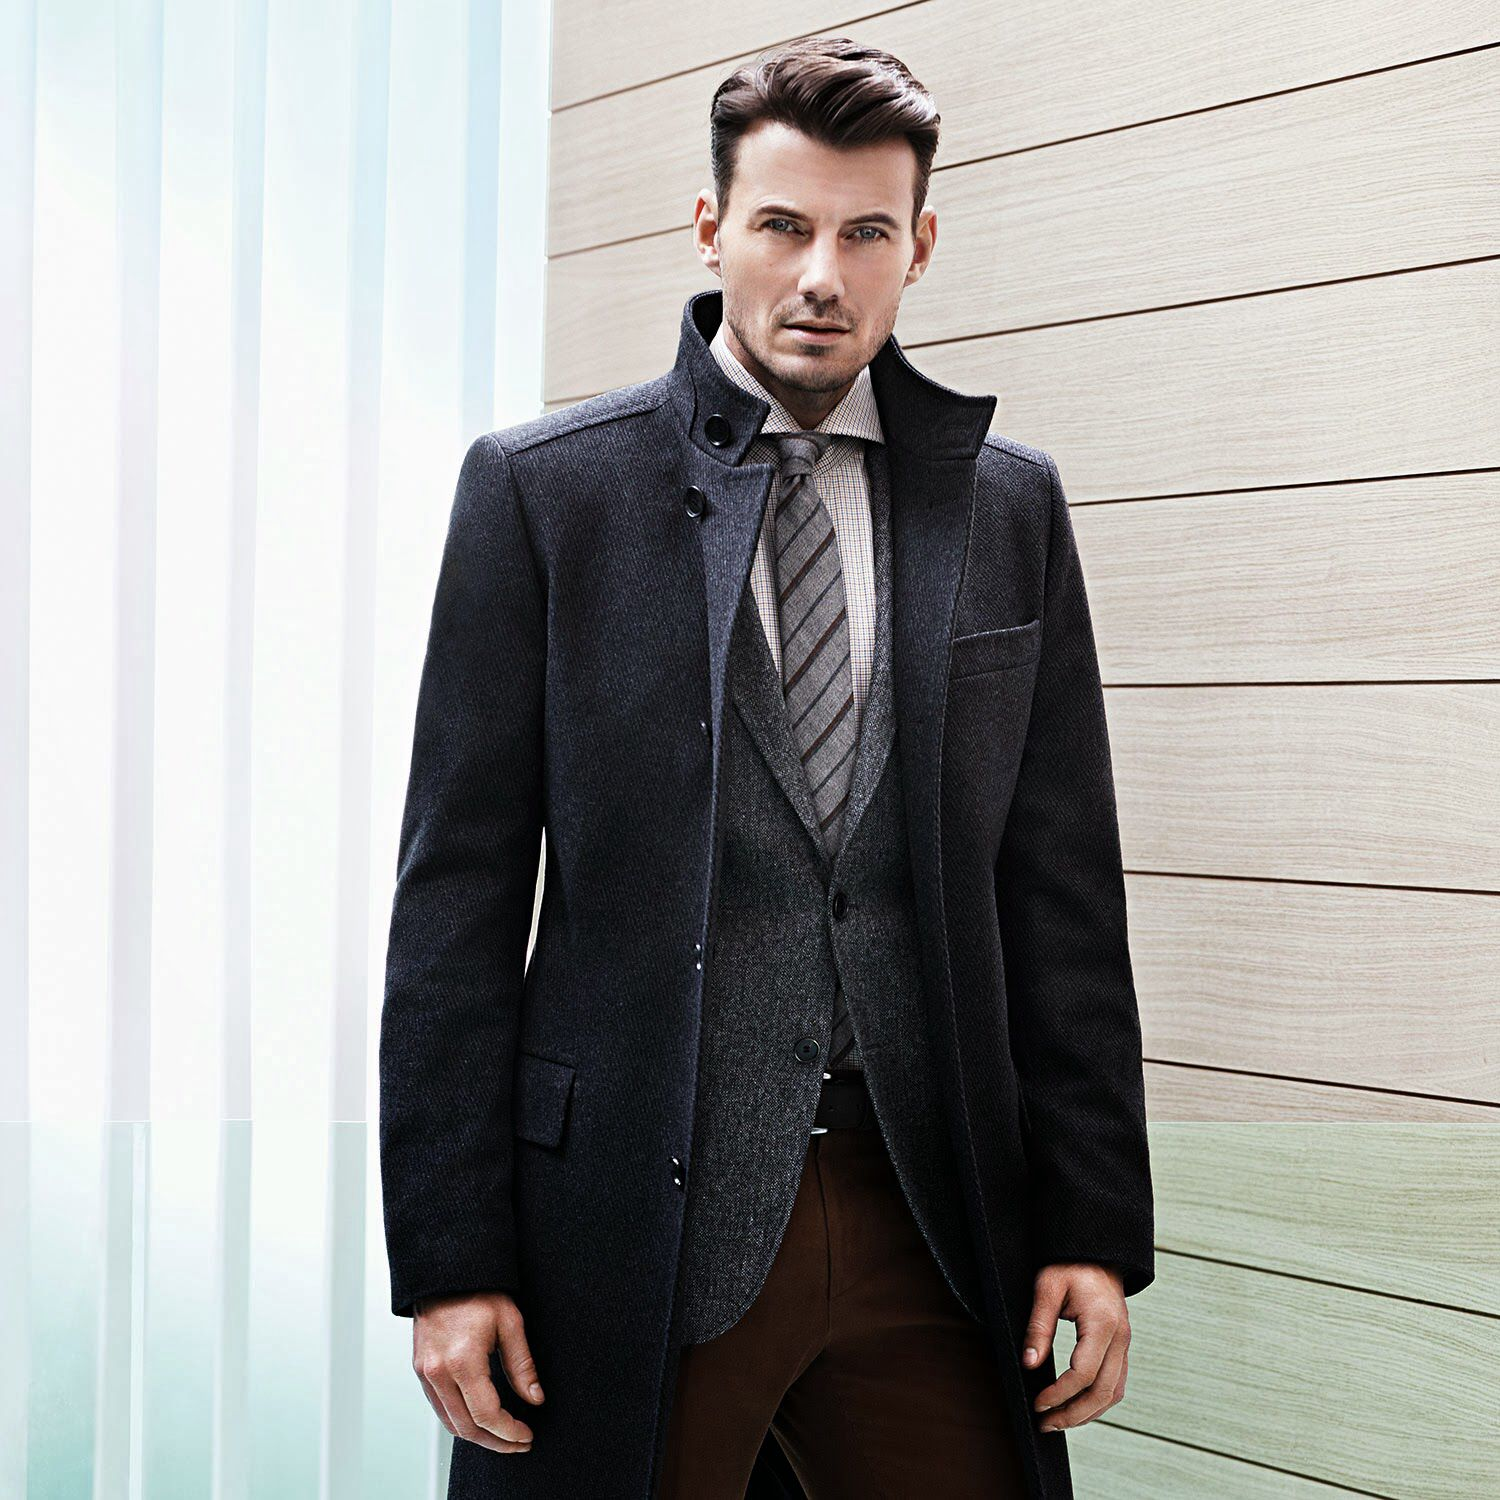 Alex Lundqvist, is the face of Hugo Boss' BOSS online campaign this winter…